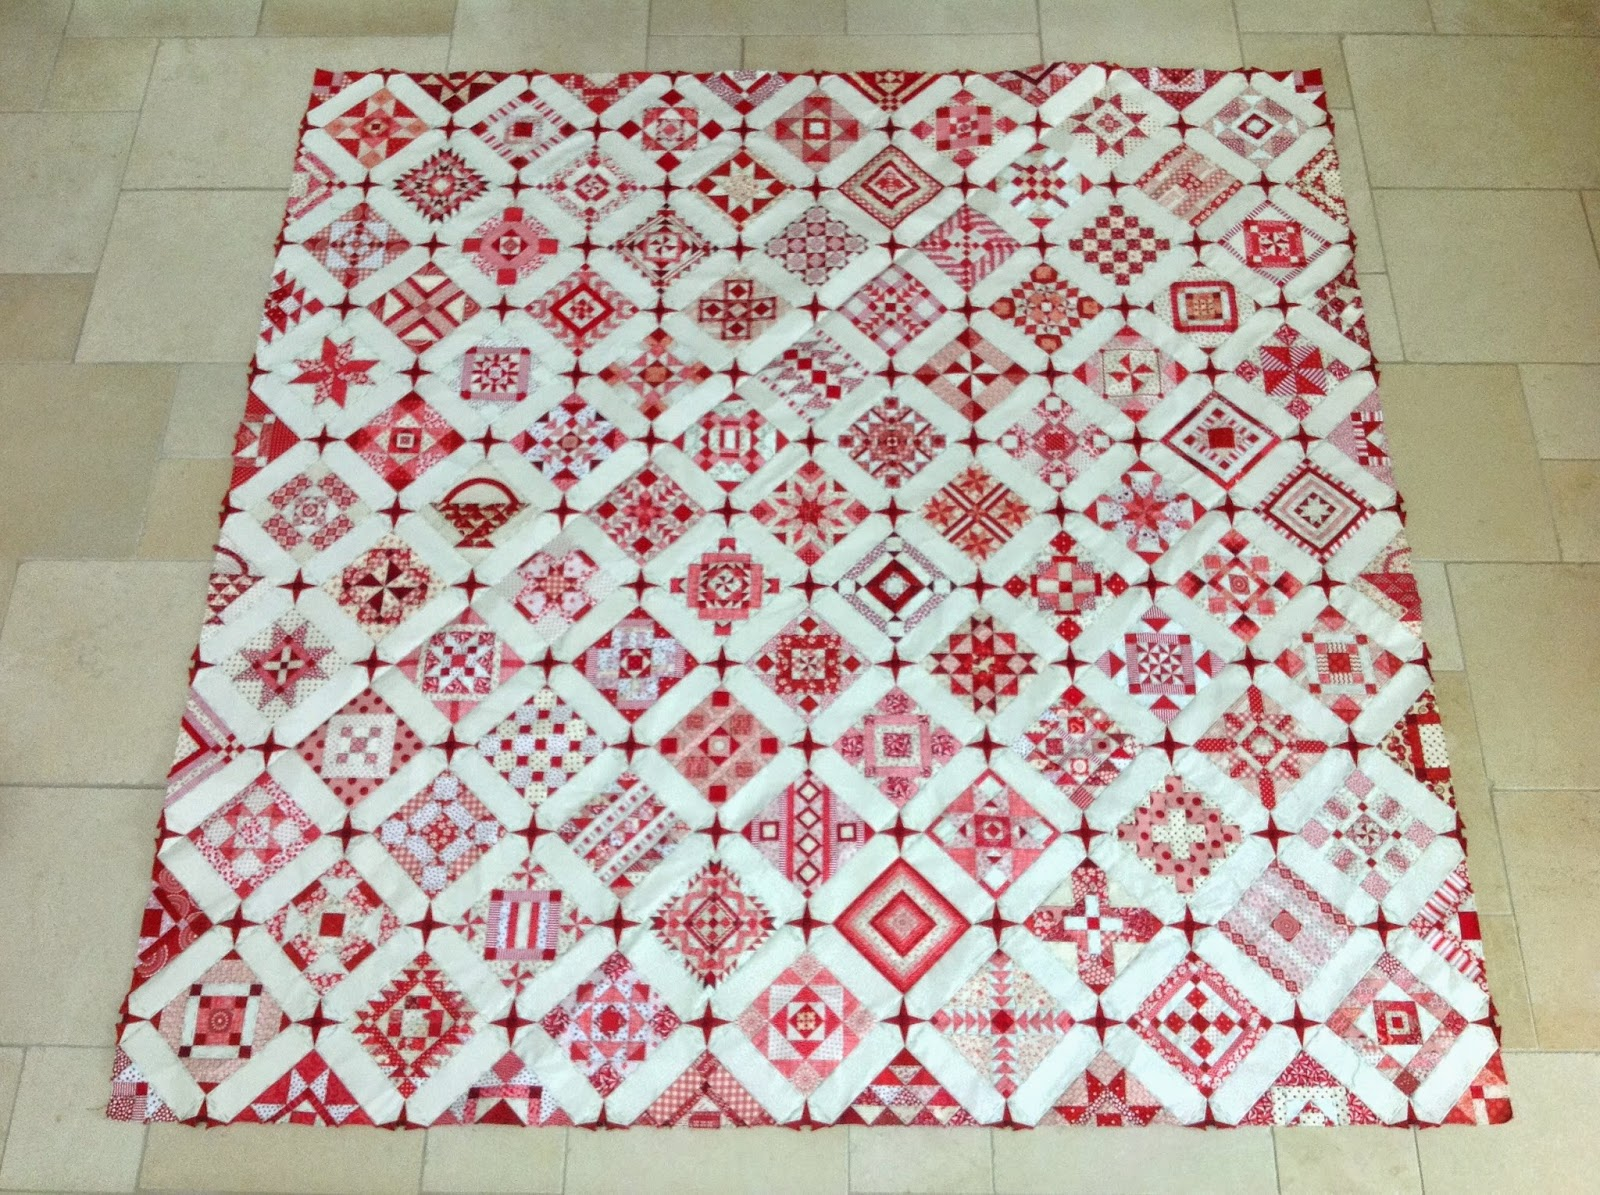 Nearly Insane Quilt - November 2014 update